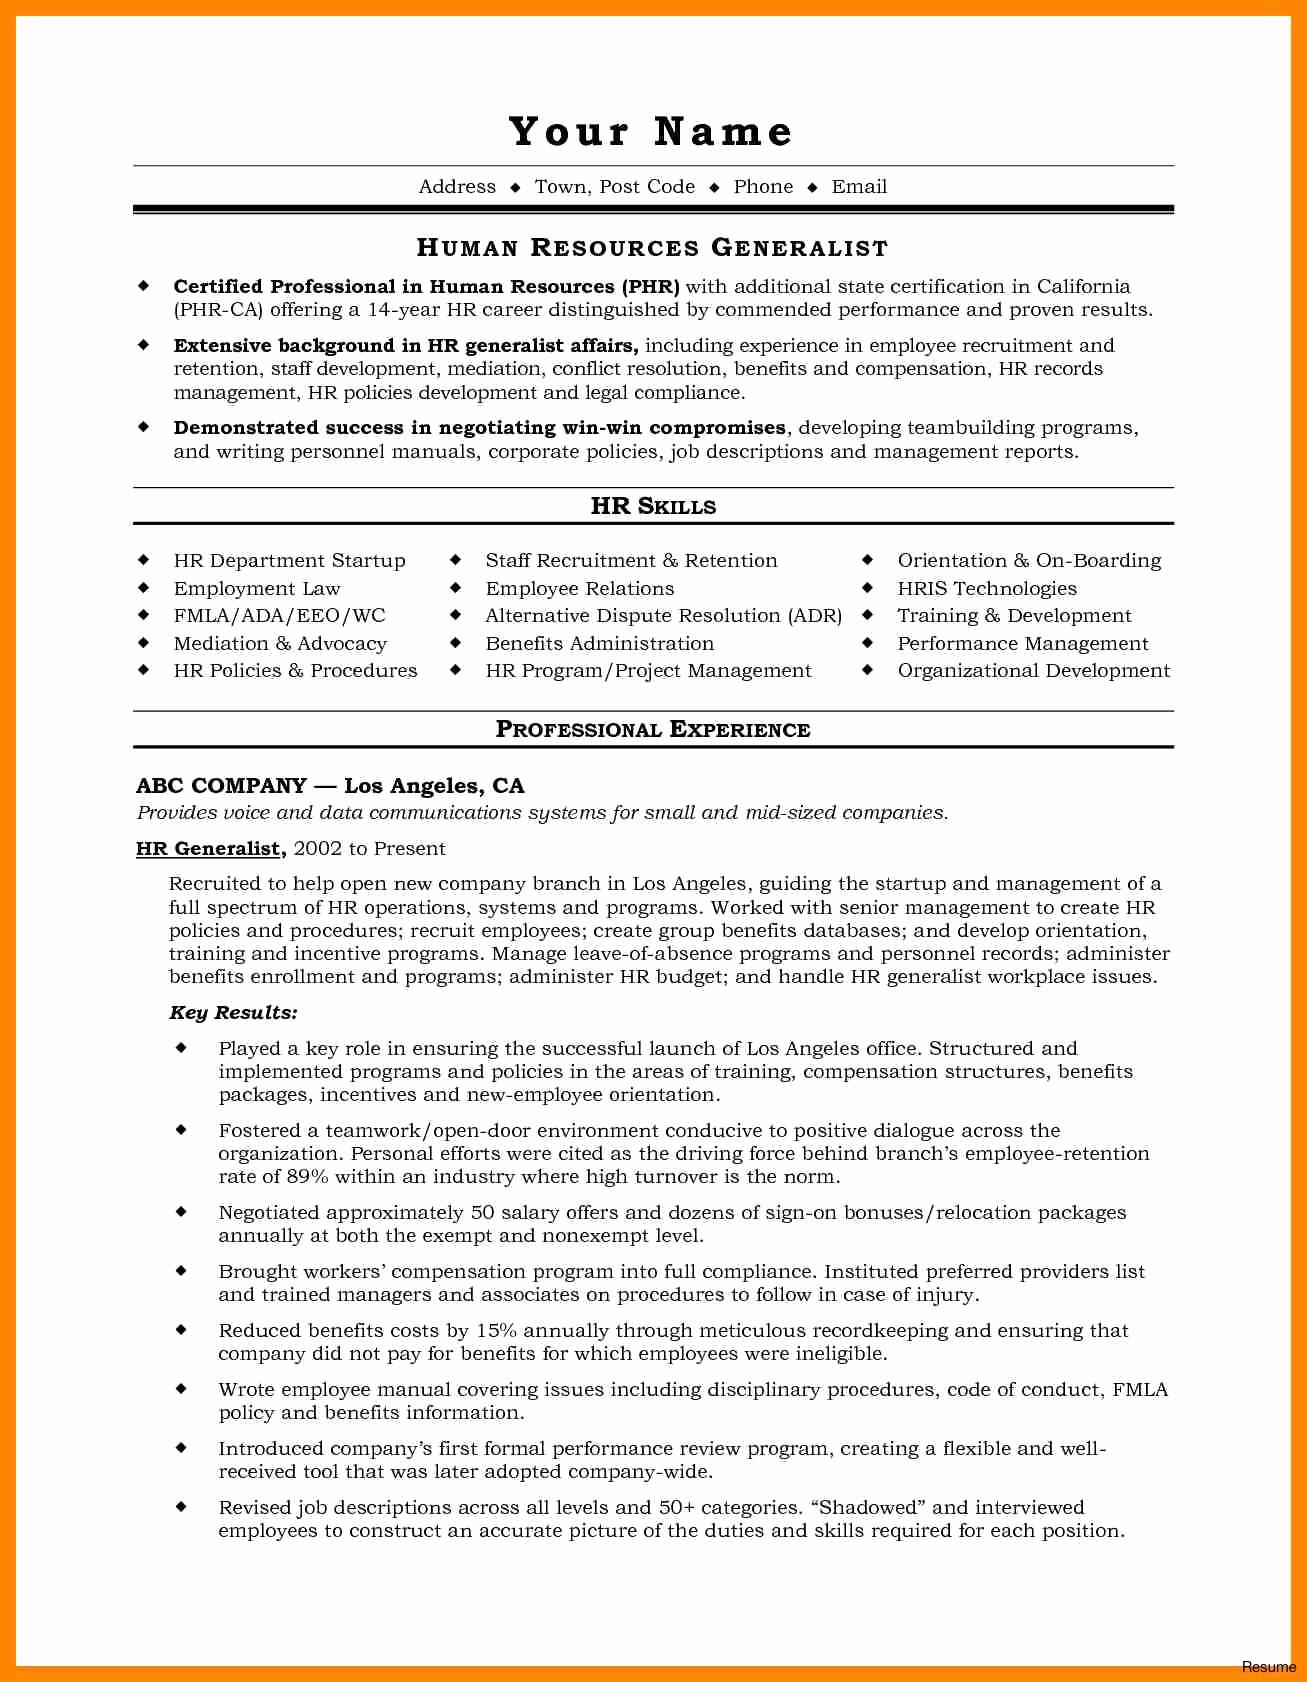 Executive assistant Resume Bullet Points - Resume Examples for Administrative assistant New Inspirational Email